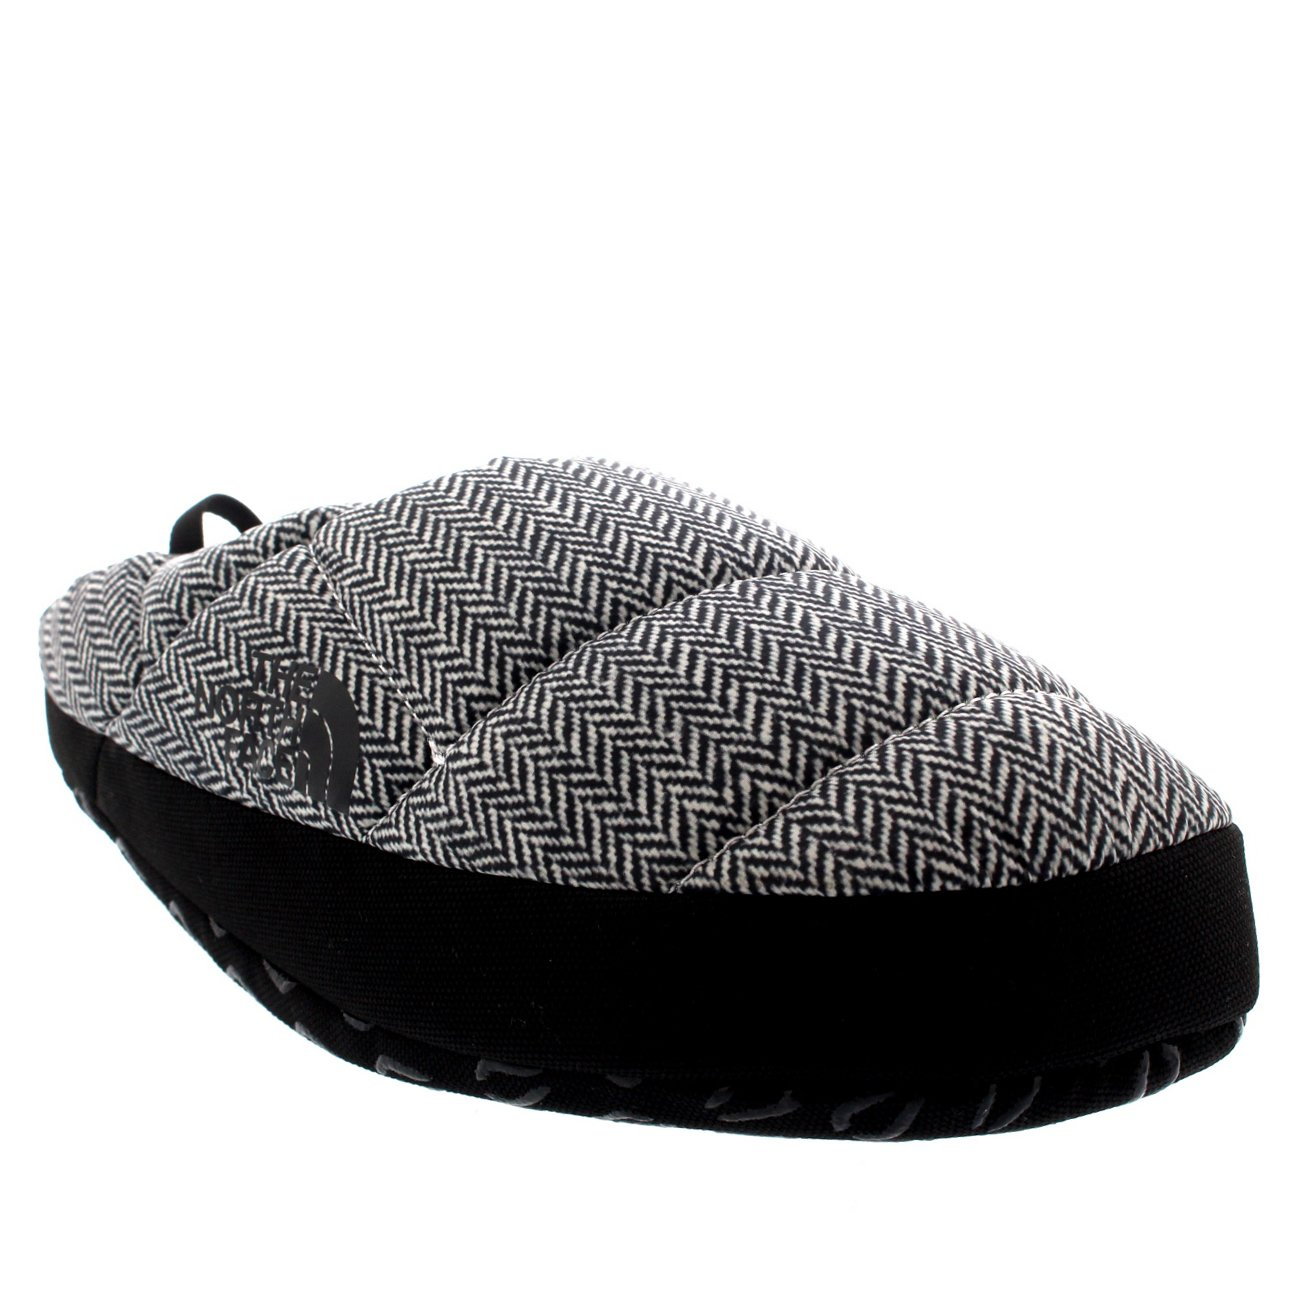 The North Face Mens NSE Tent Mule III Thermal Warm Winter Mule Slippers - Black/White - 8-9.5 by The North Face (Image #3)